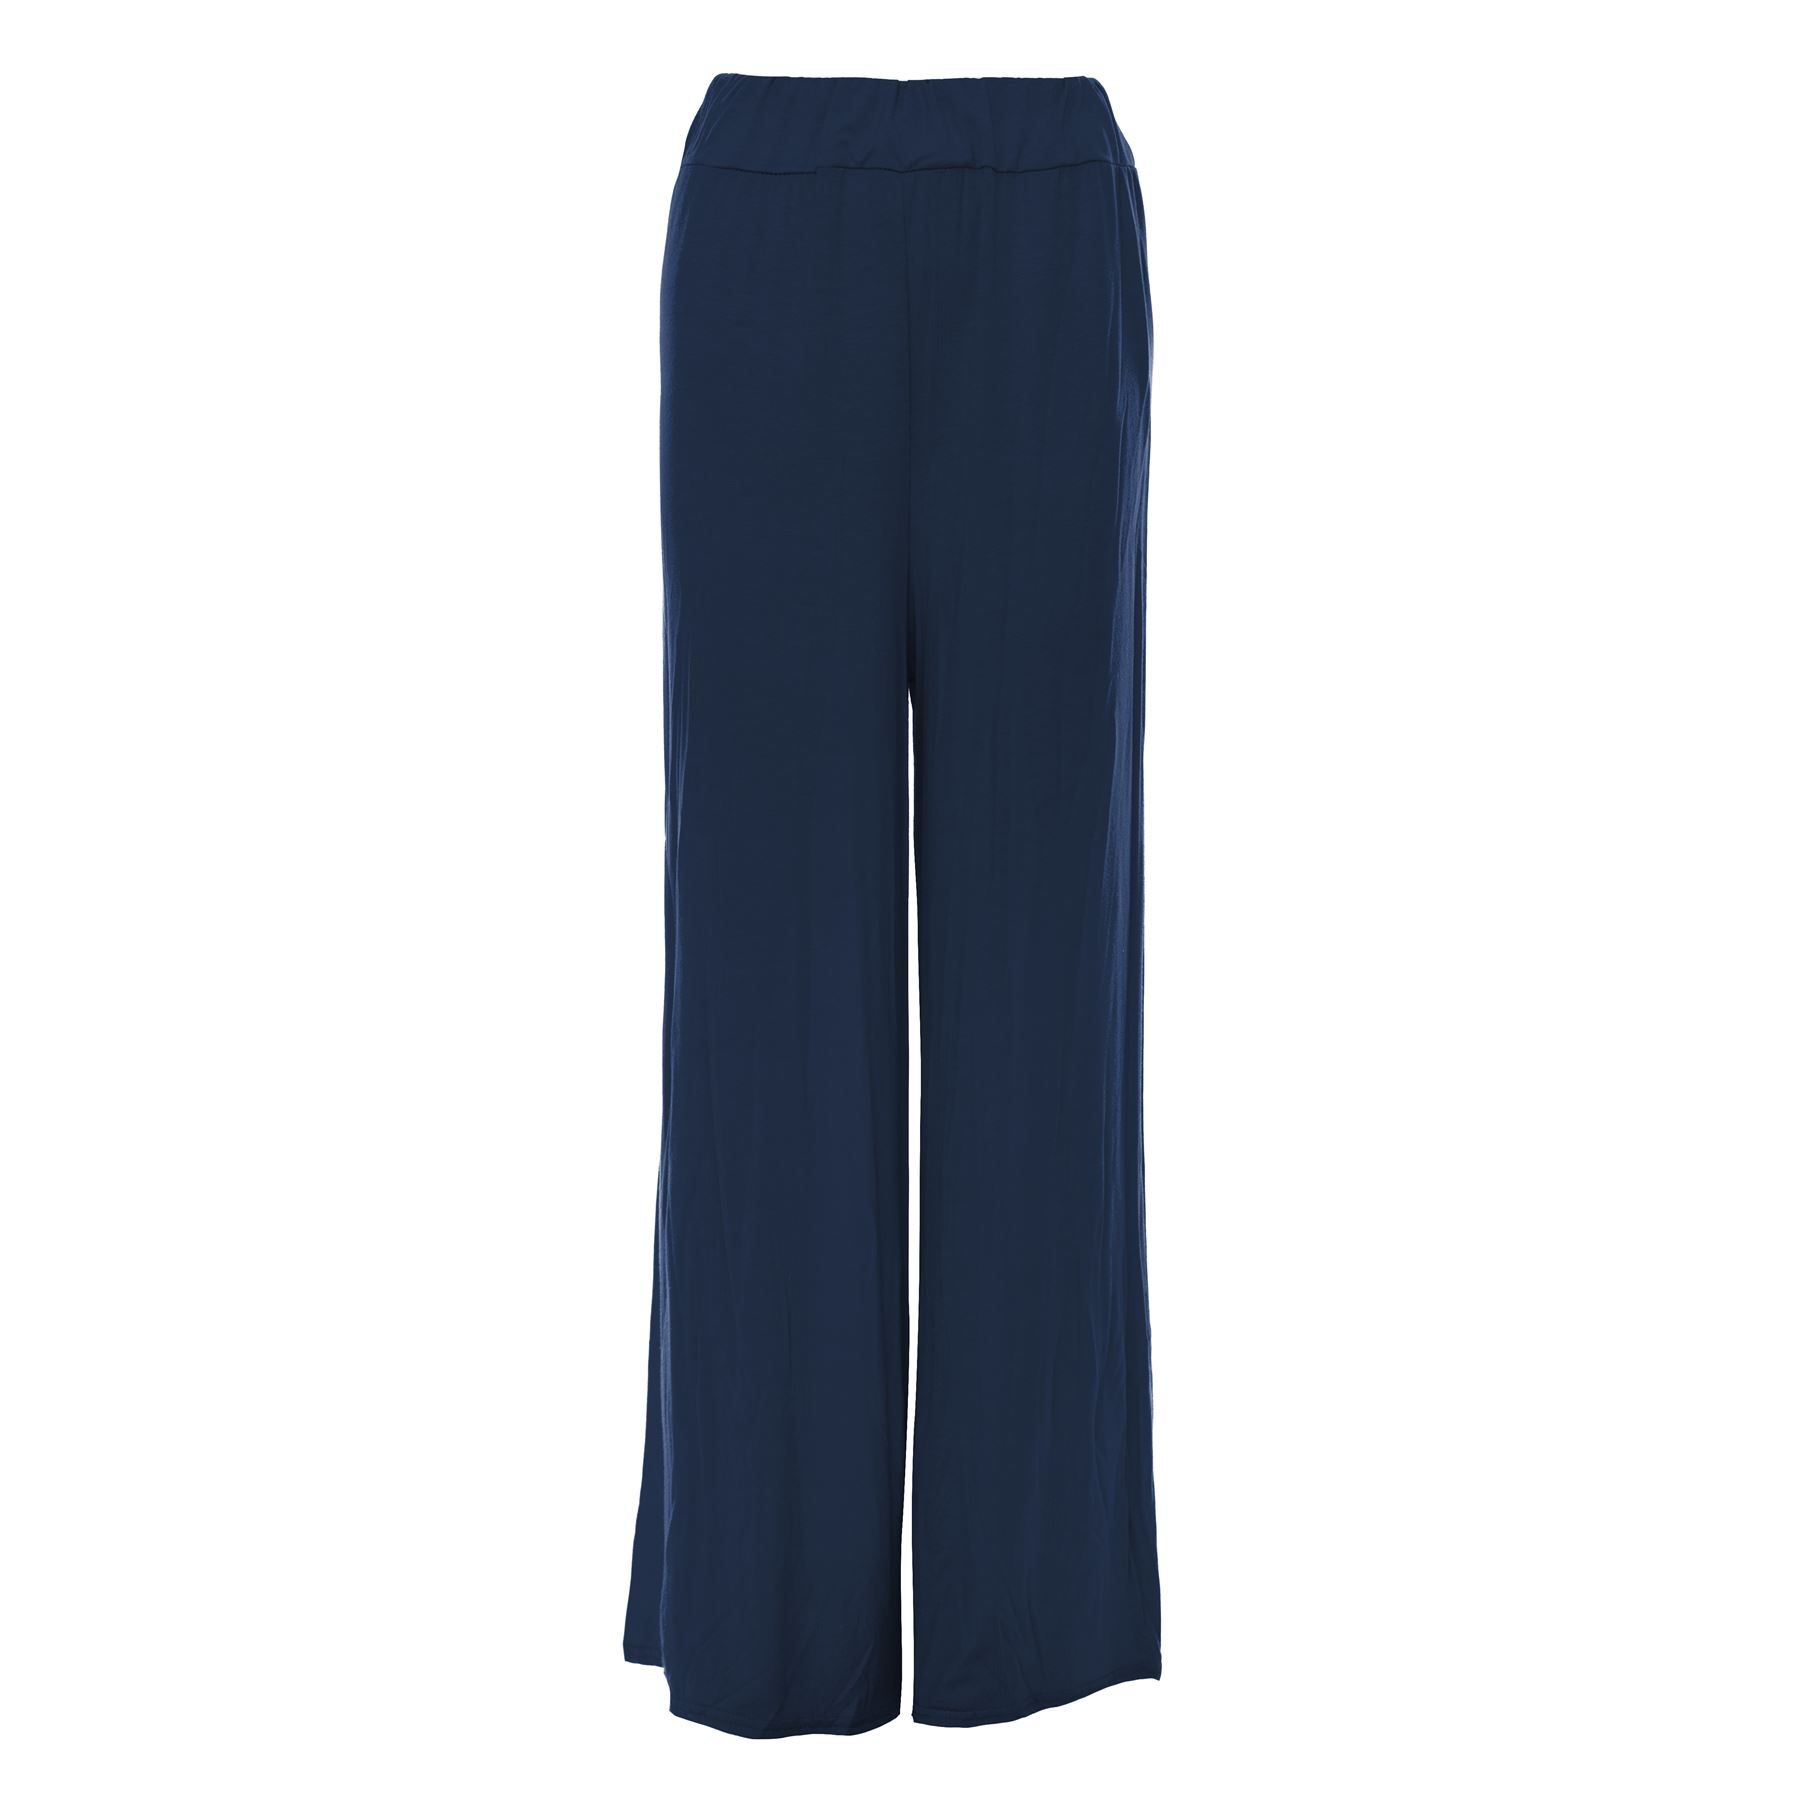 Women's Palazzo Pants. Showing 40 of 41 results that match your query. Search Product Result. Product - Women's Casual Middle Waist Retro Flare Flower Printing Wide Leg Pants. Product - ZANZEA New Women Chiffon High Waist Palazzo Yaga Pants Wide Leg Loose Casual Long Trousers. Product Image. Price $